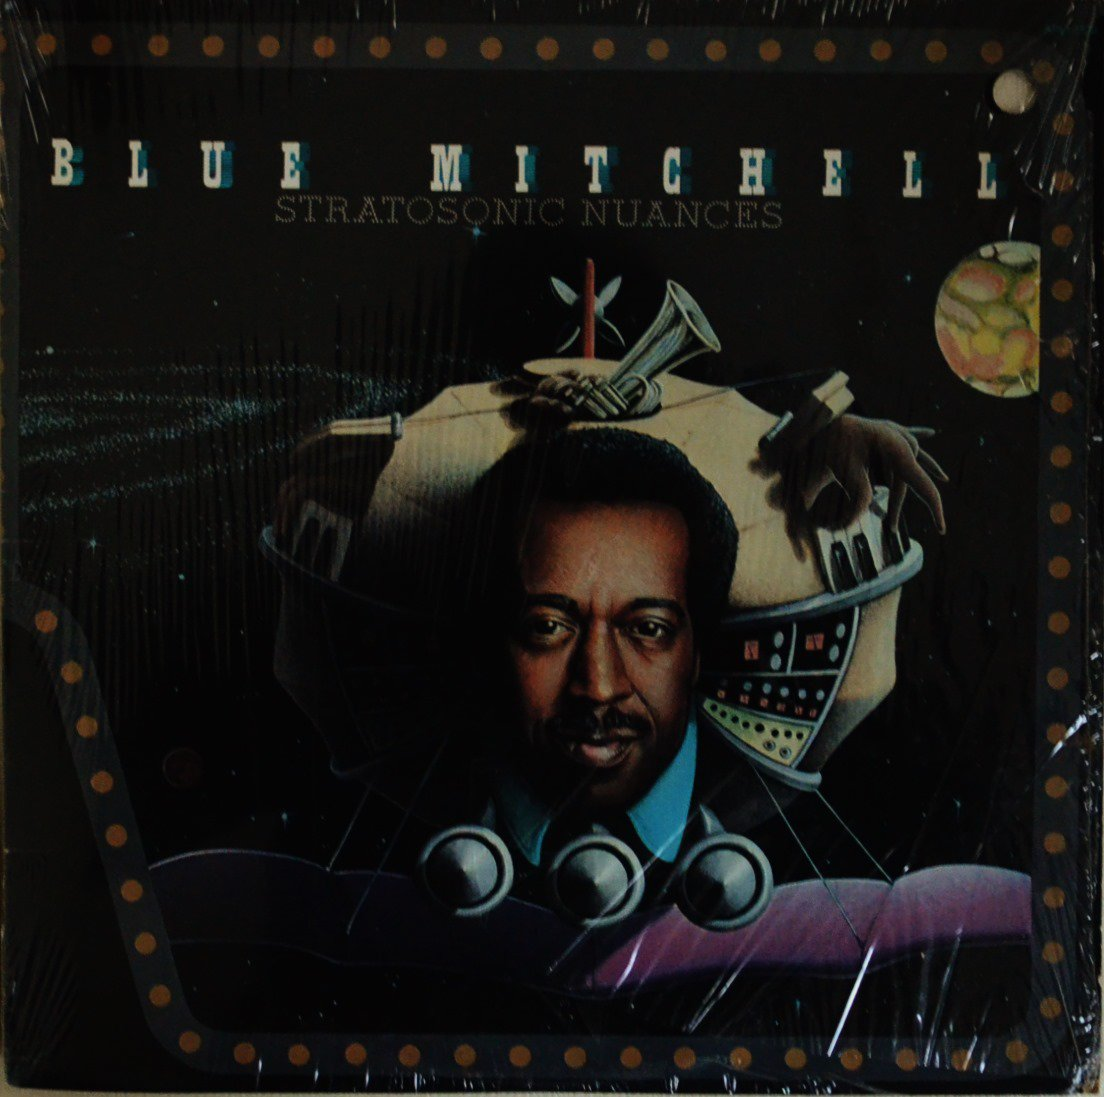 BLUE MITCHELL / STRATOSONIC NUANCES (LP)